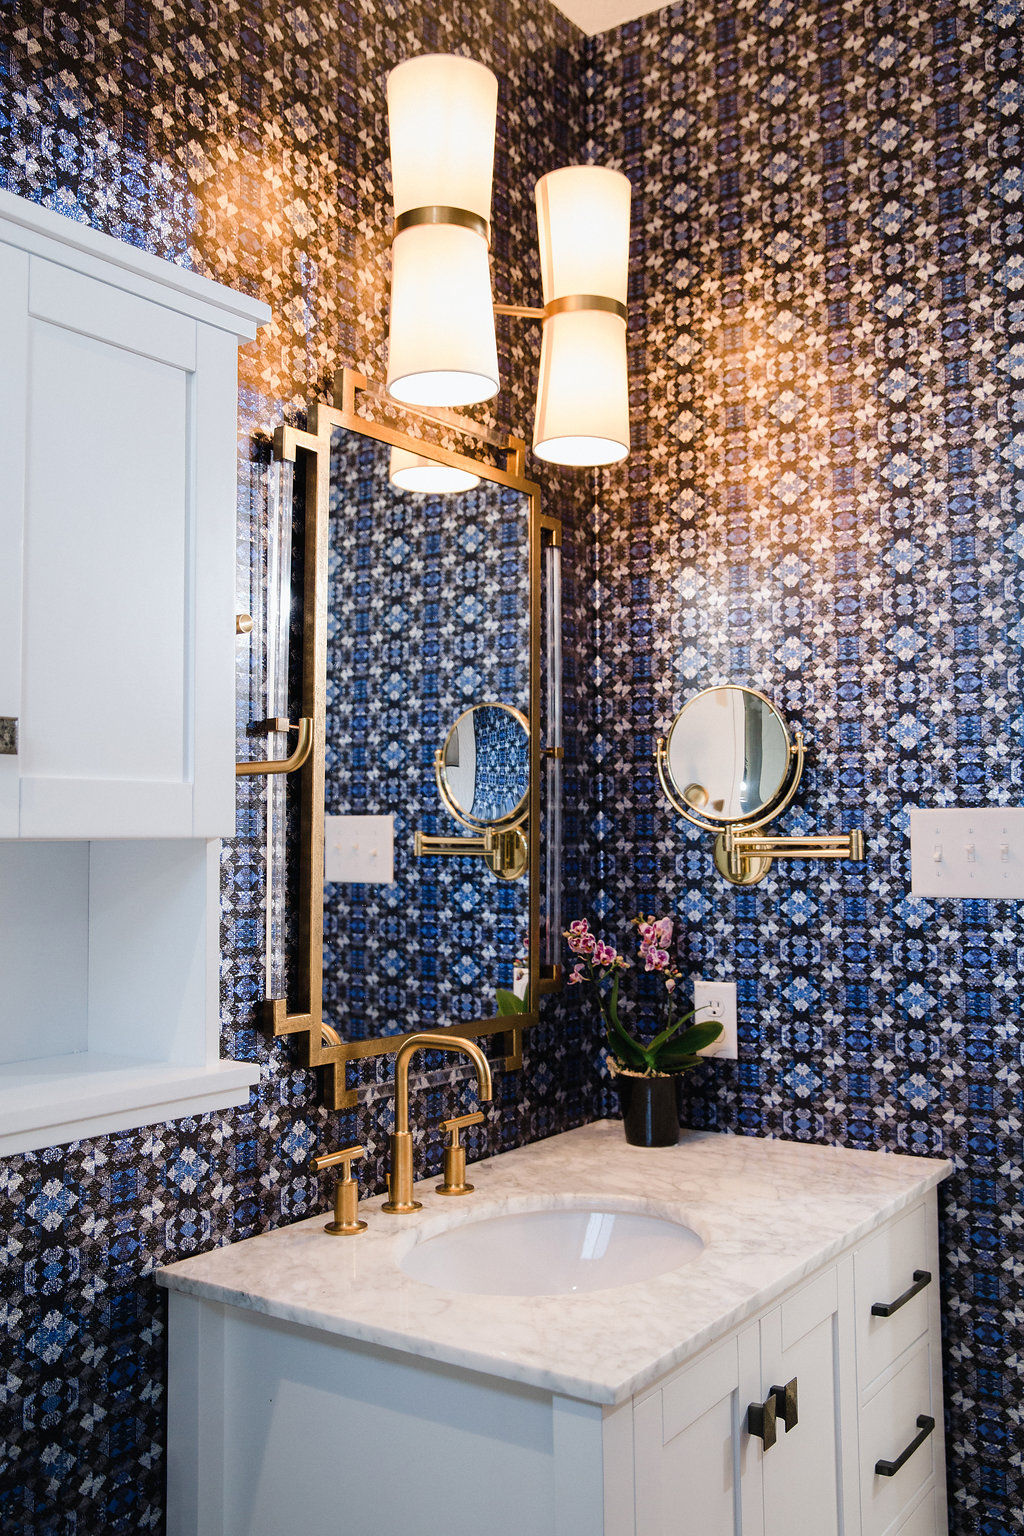 Brass Faucet and Geometric Wallpaper in this Glamorous Bathroom by Maureen Stevens Design